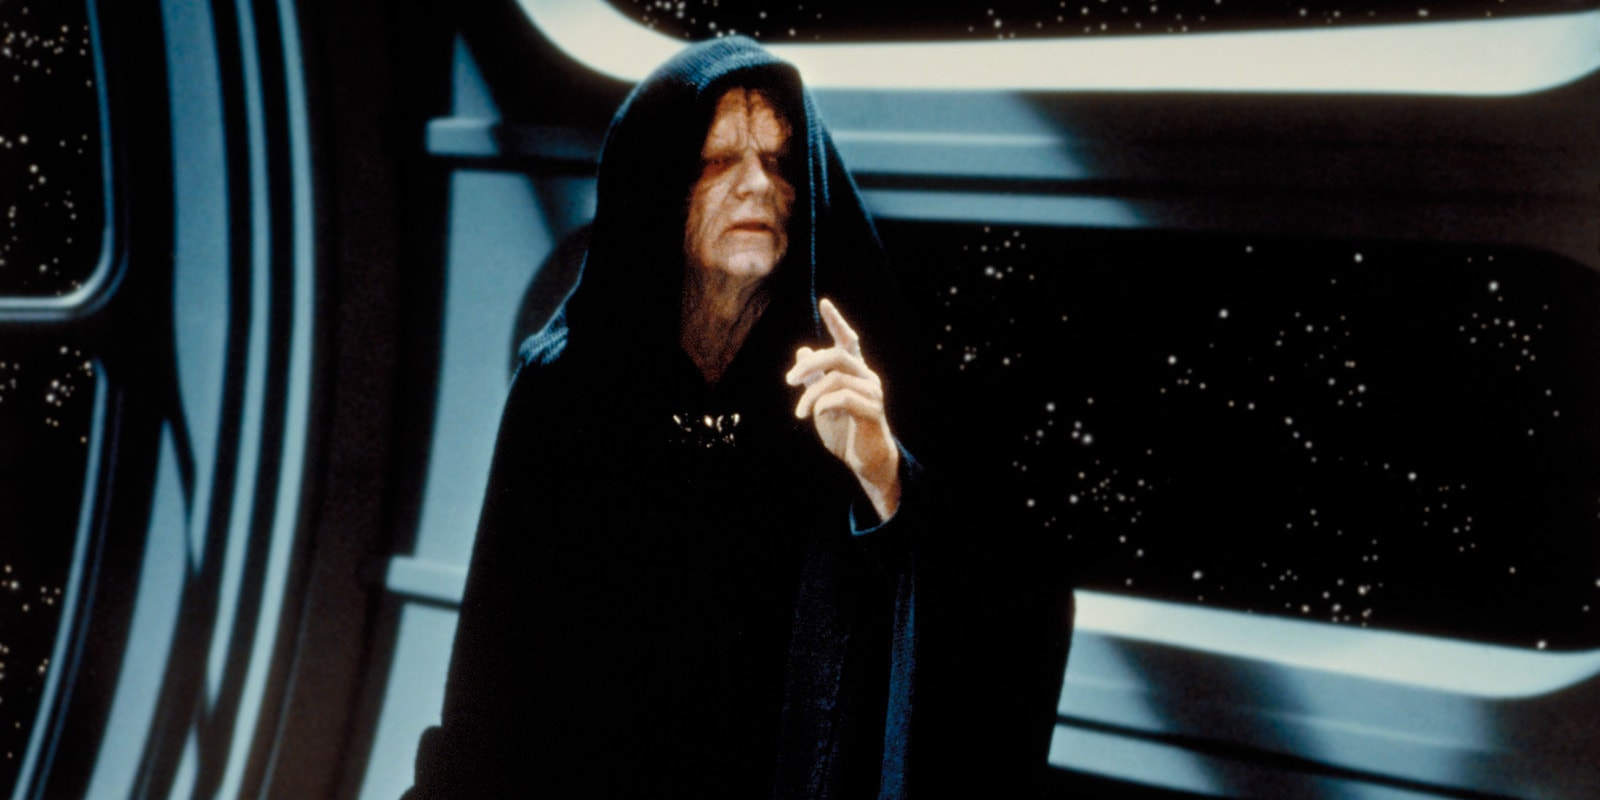 Emperor Palpatine / Darth Sidious | StarWars.com